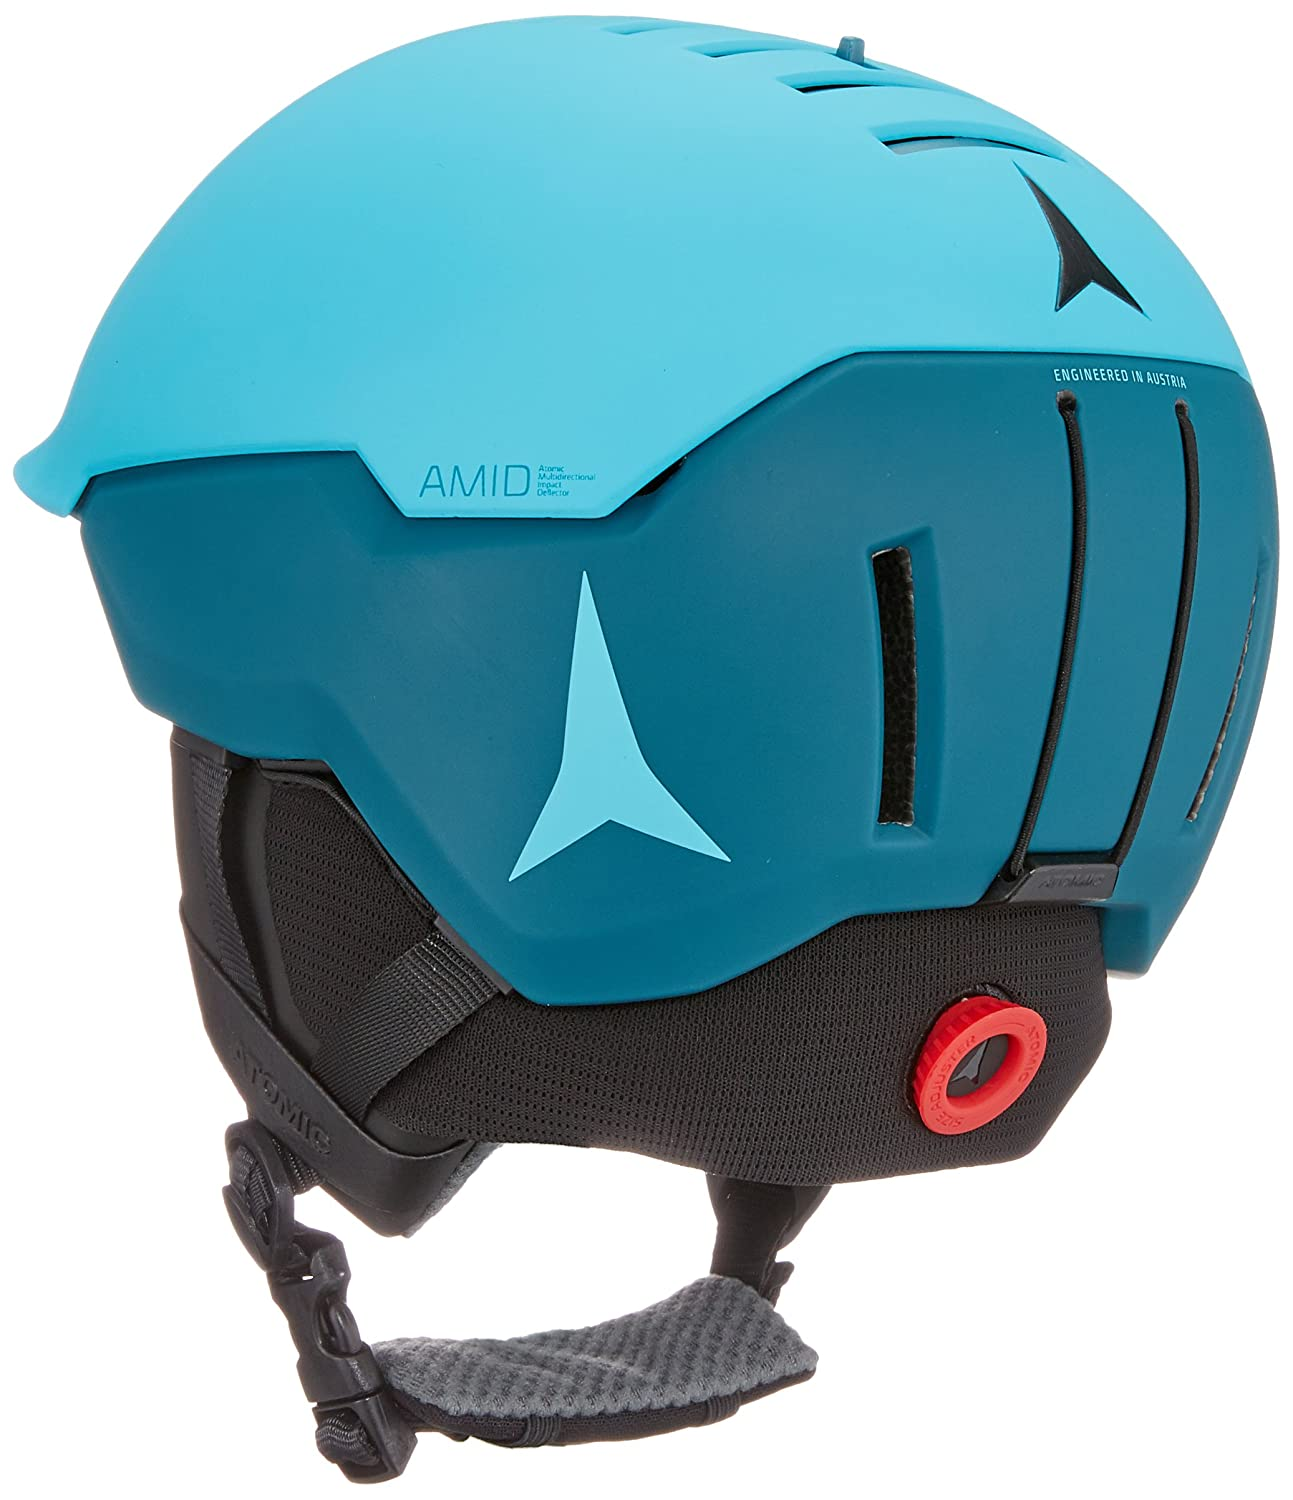 08bef1f6195 Amazon.com   Atomic Unisex Revent+ AMID - AN5005446 (Blue - S)   Sports    Outdoors